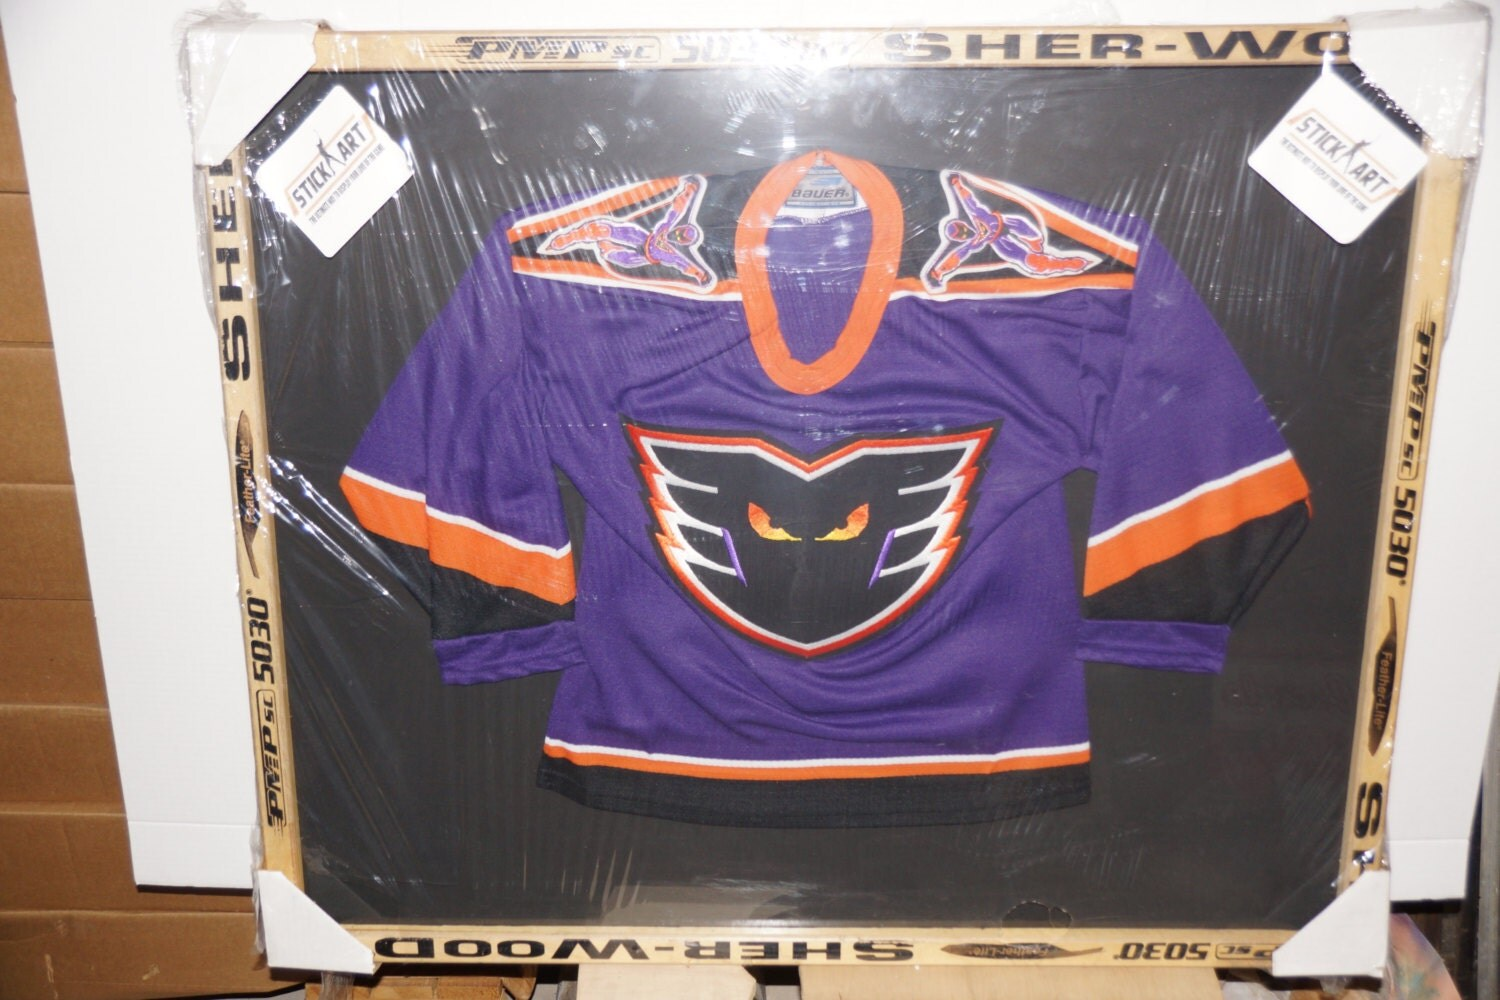 real phantoms hockey jersey framed in real hockey sticks